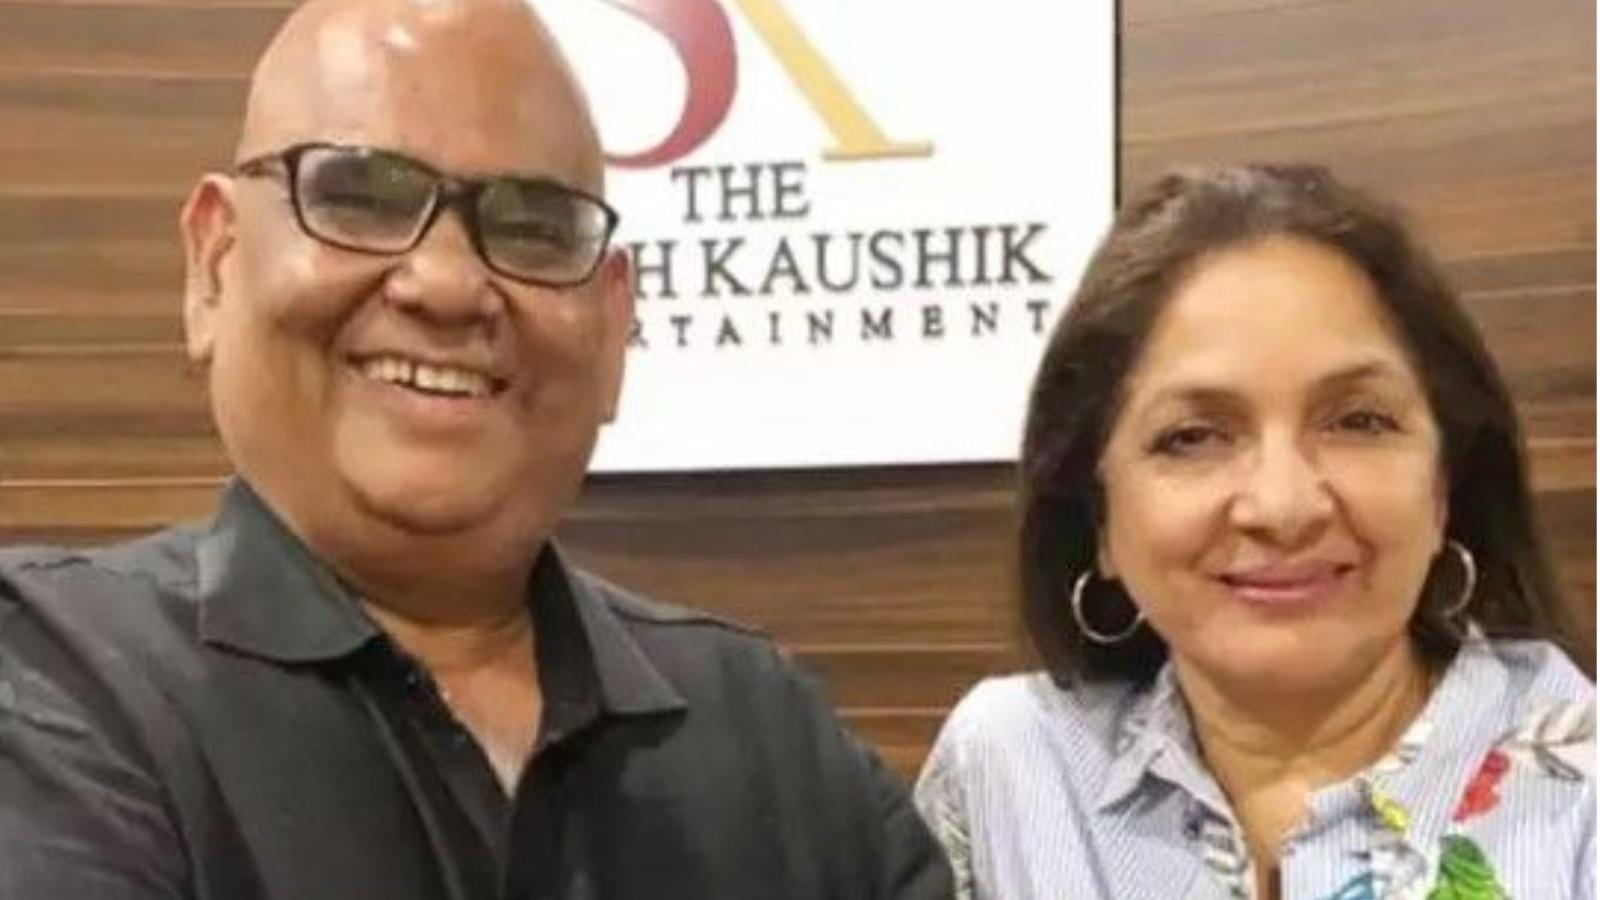 satish-kaushik-reveals-neena-gupta-had-tears-in-her-eyes-when-he-proposed-to-her-for-marriage-says-i-simply-stood-by-her